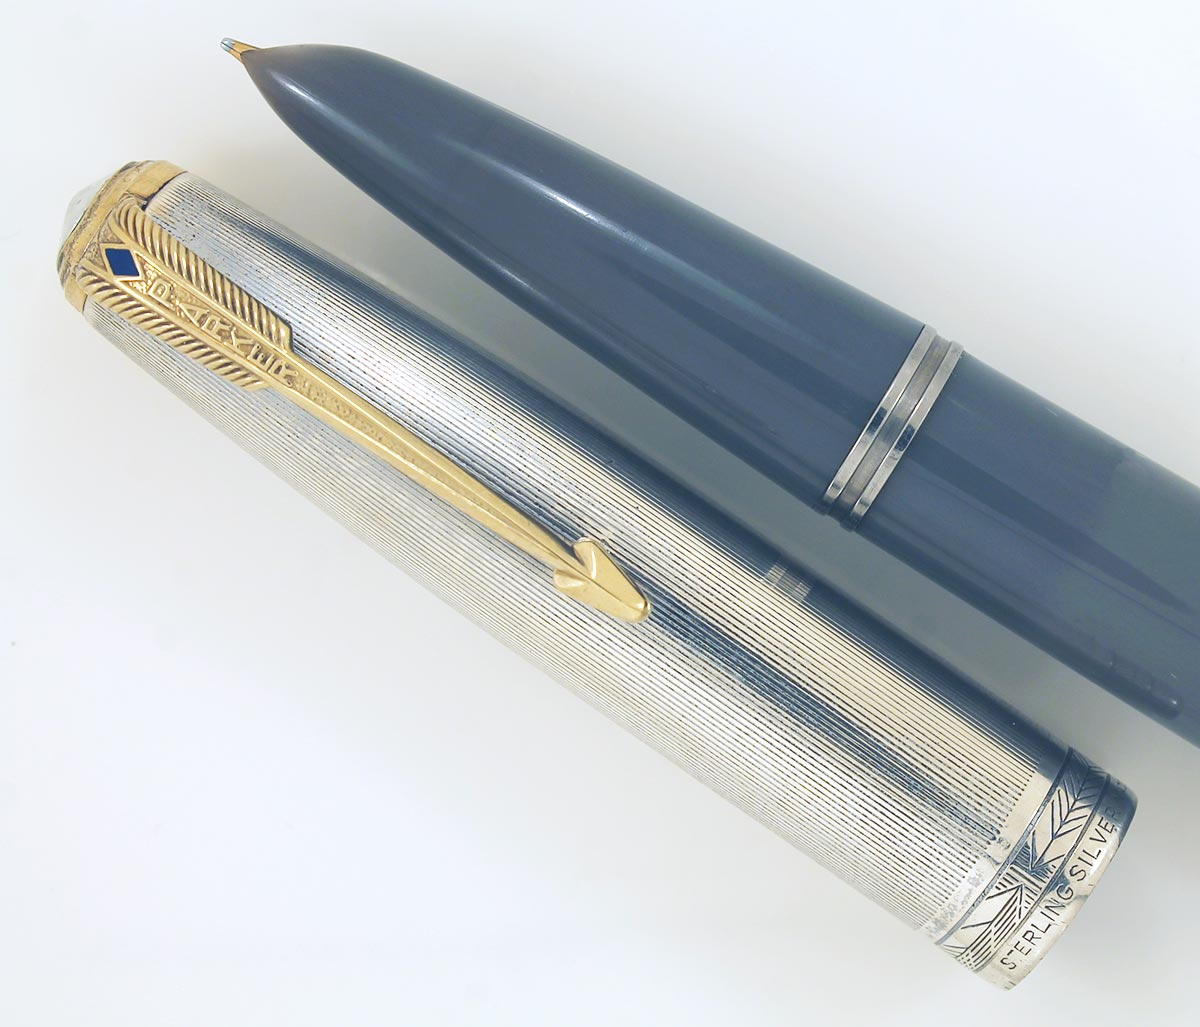 PARKER 51 DOUBLE JEWEL 1st YEAR DOVE GRAY 1st YEAR LINED STERLING CAP RESTORED OFFERED BY ANTIQUE DIGGER